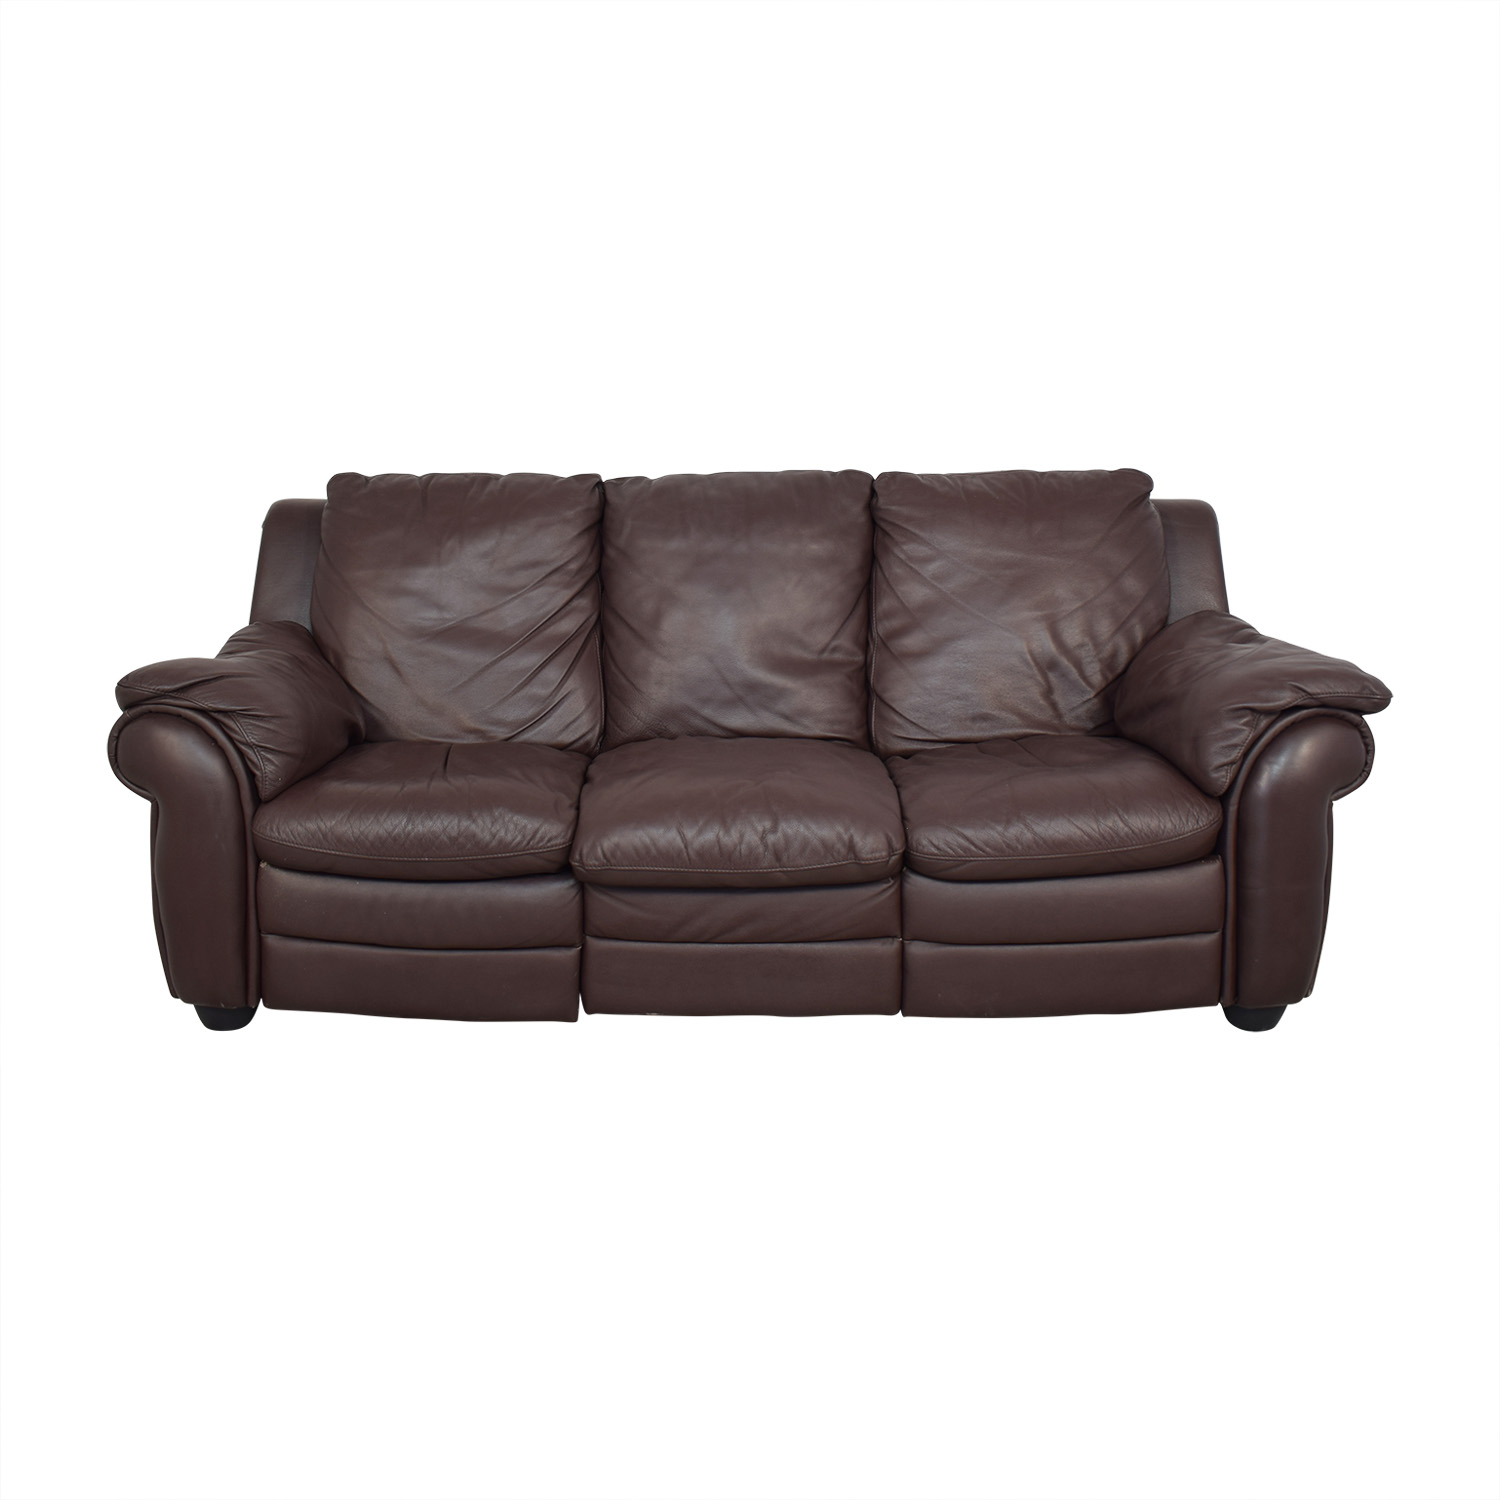 Three Cushion Recliner Sofa nyc